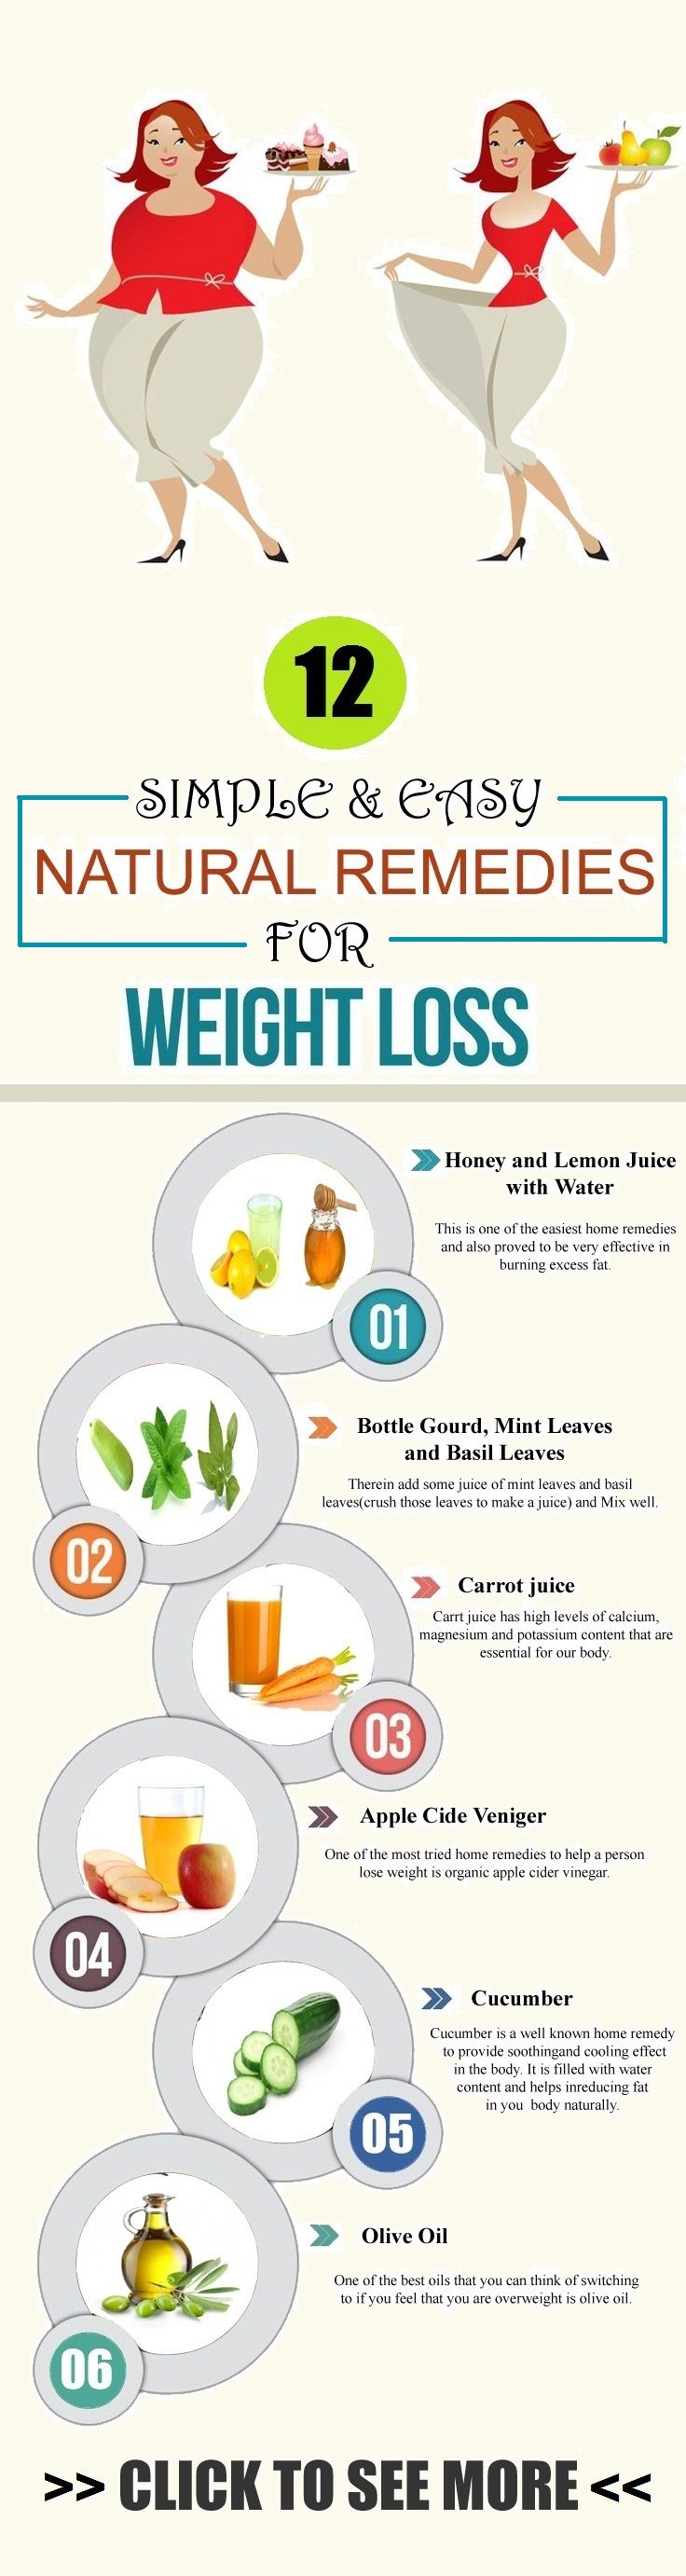 Weight loss physicians durham nc